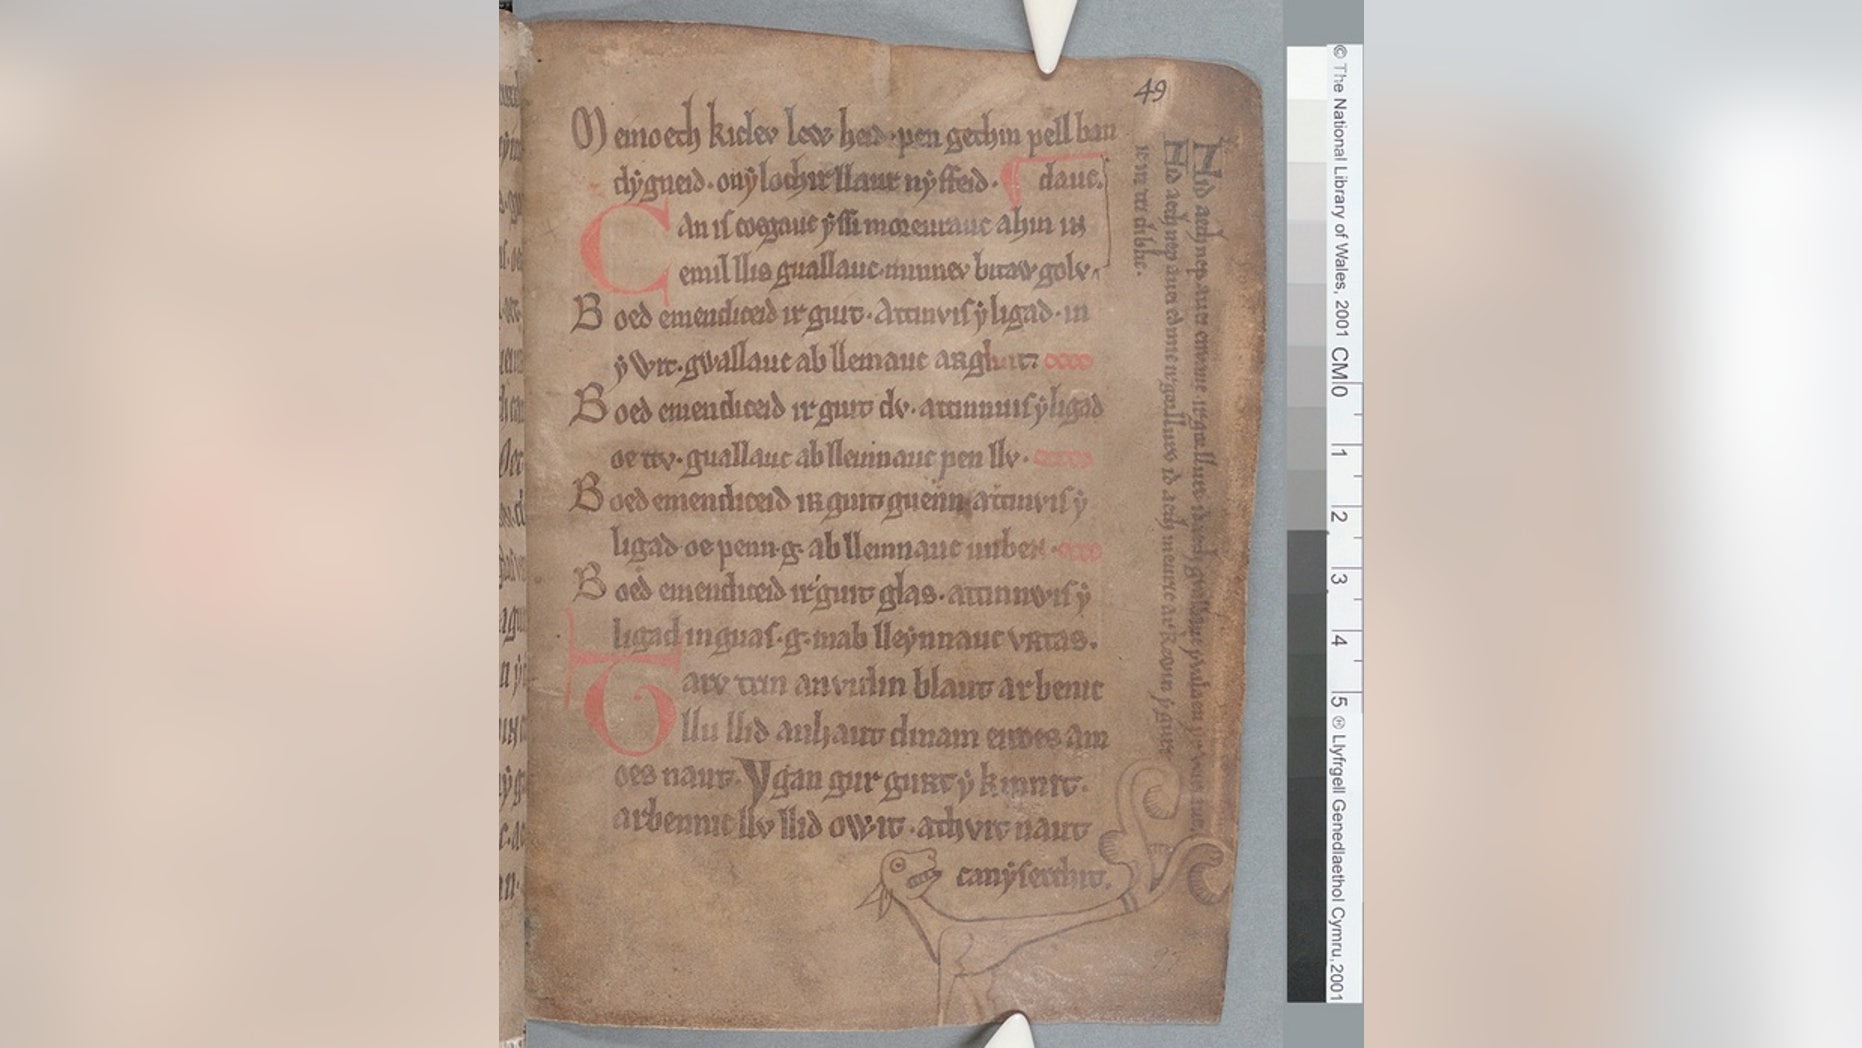 """A page (49r) of """"The Black Book of Carmarthen"""" showing the stylized drawing of a dog and text in the margins."""